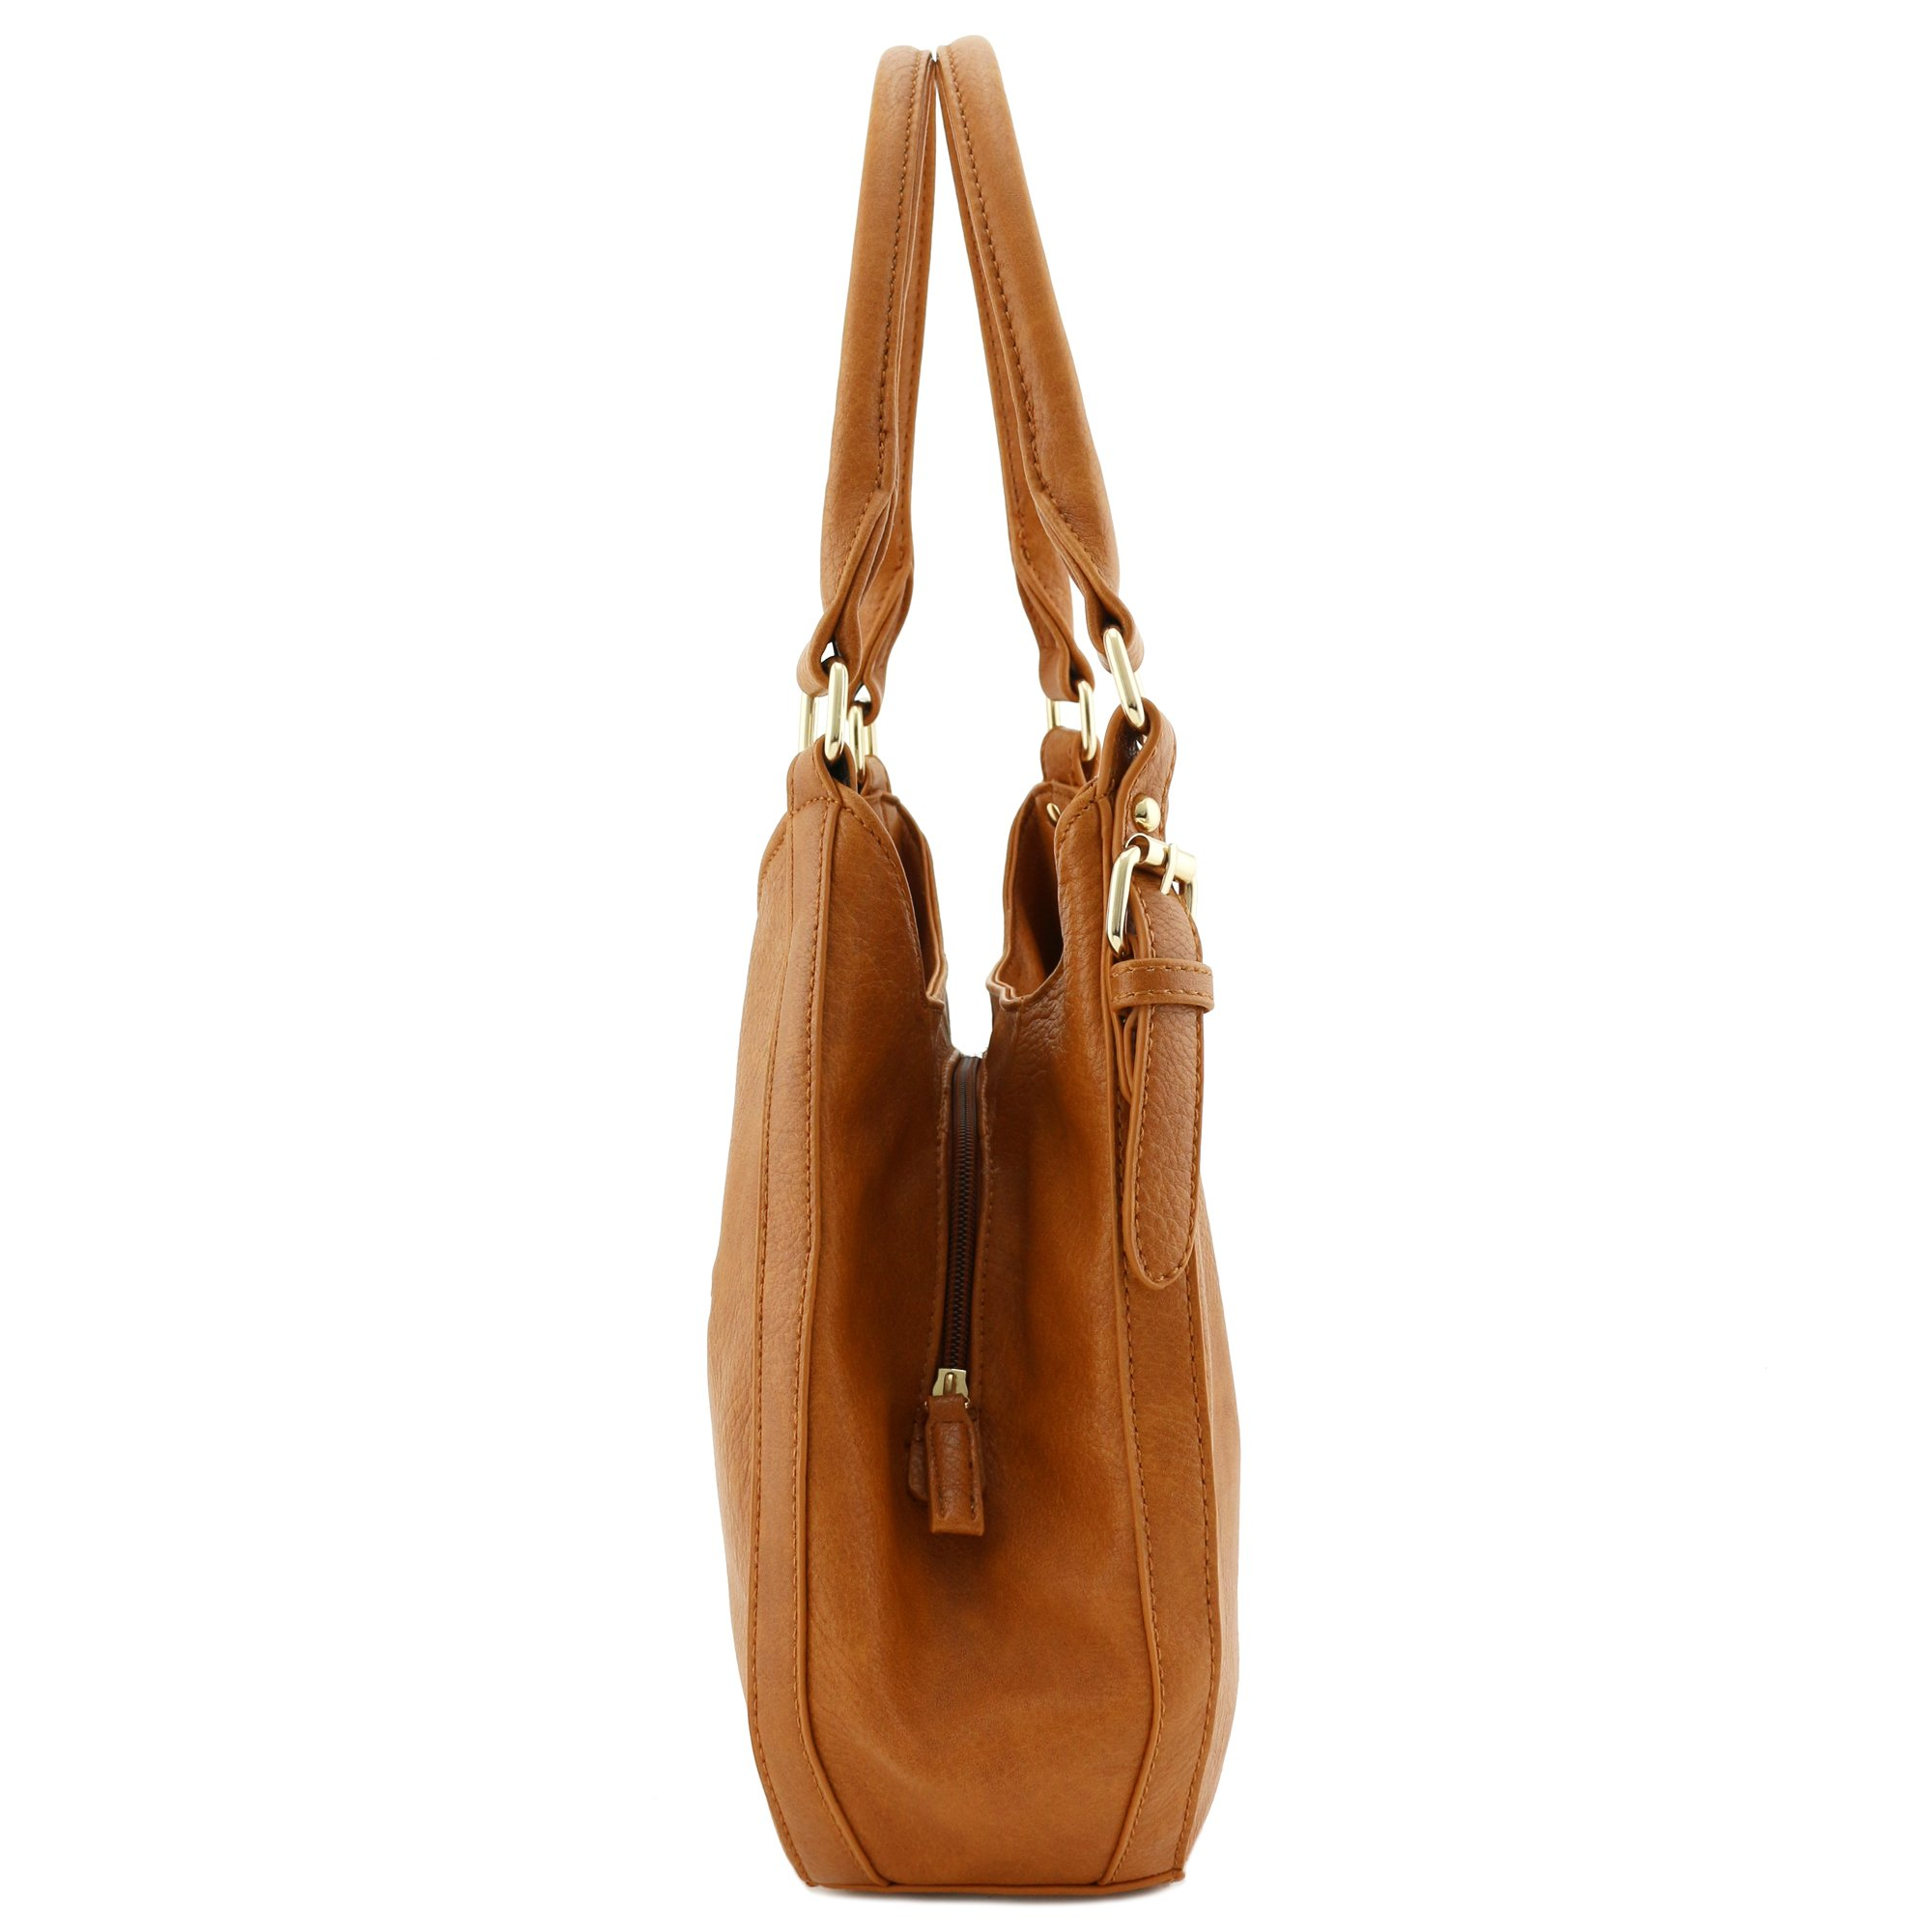 Light-weight 3 Compartment Faux Leather Medium Hobo Bag Tan by FashionPuzzle (Image #3)